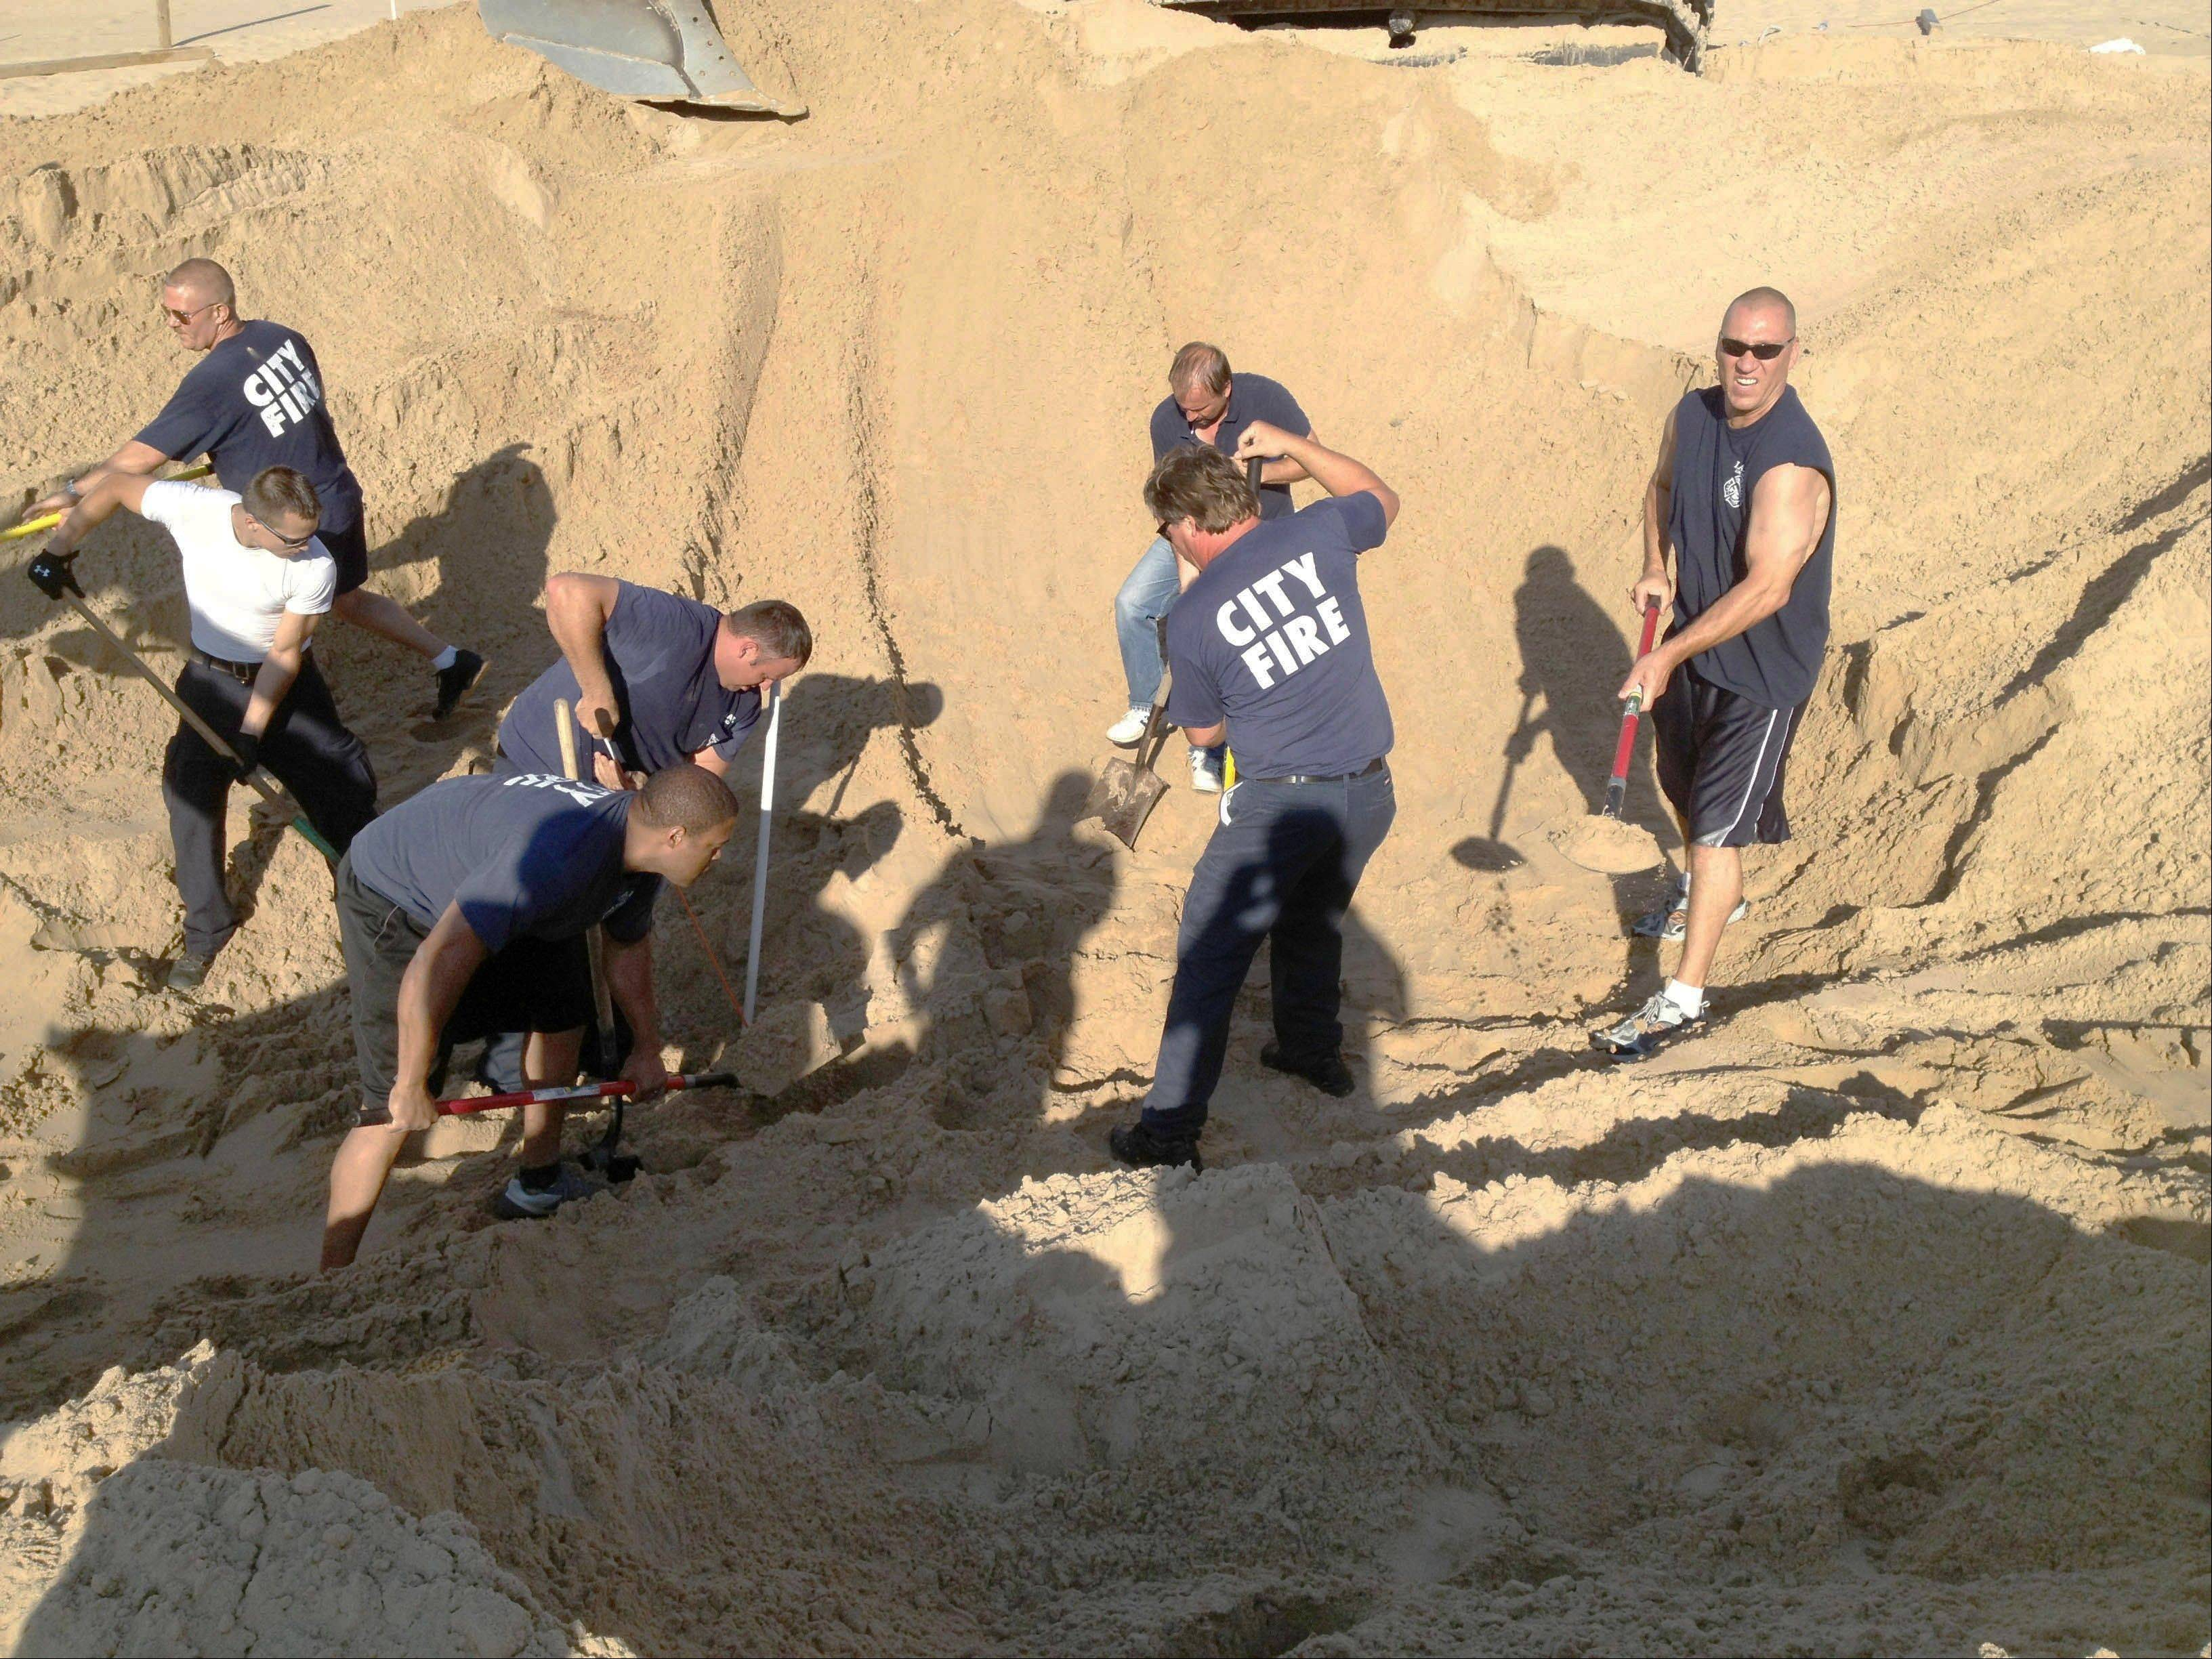 Michigan City police and firefighters dig with shovels Friday to rescue Nathan Woessner of Sterling, Ill., who was trapped for more than three hours under about 11 feet of sand at Mount Baldy dune near Michigan City, Ind.